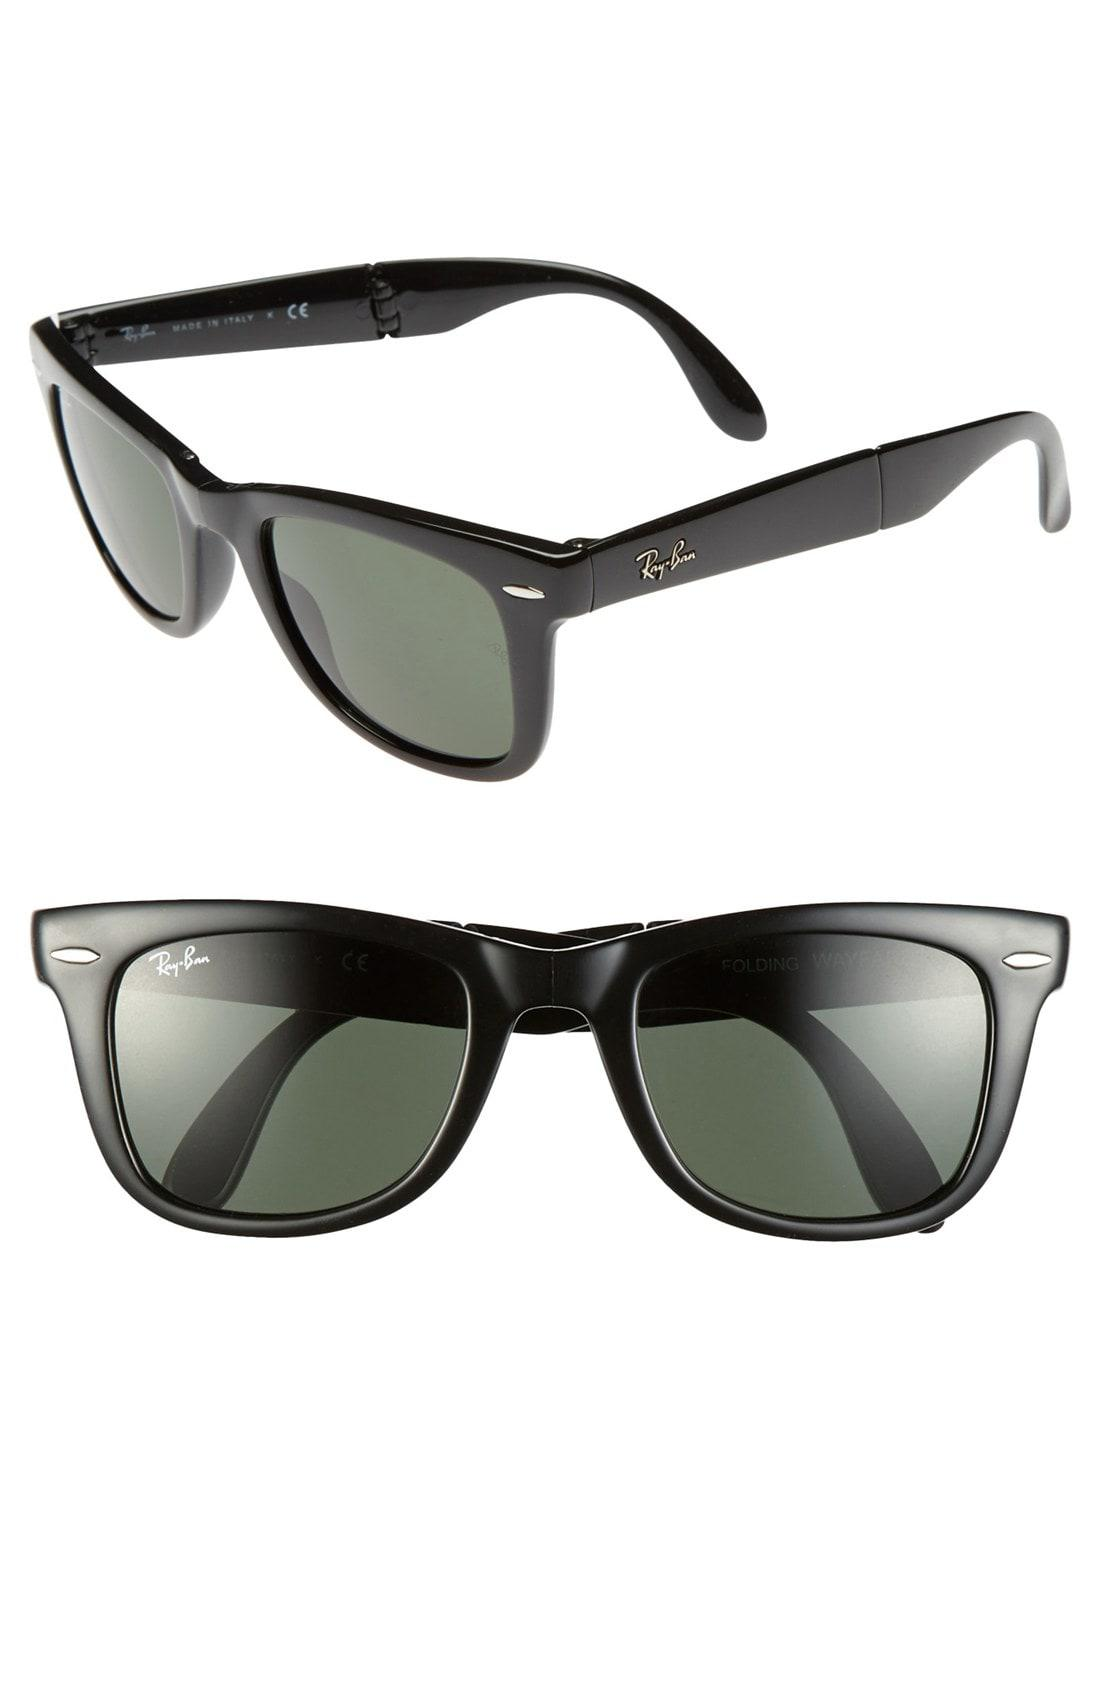 5d4beaac57a Lyst - Ray-Ban Standard 50mm Folding Wayfarer Sunglasses in Black